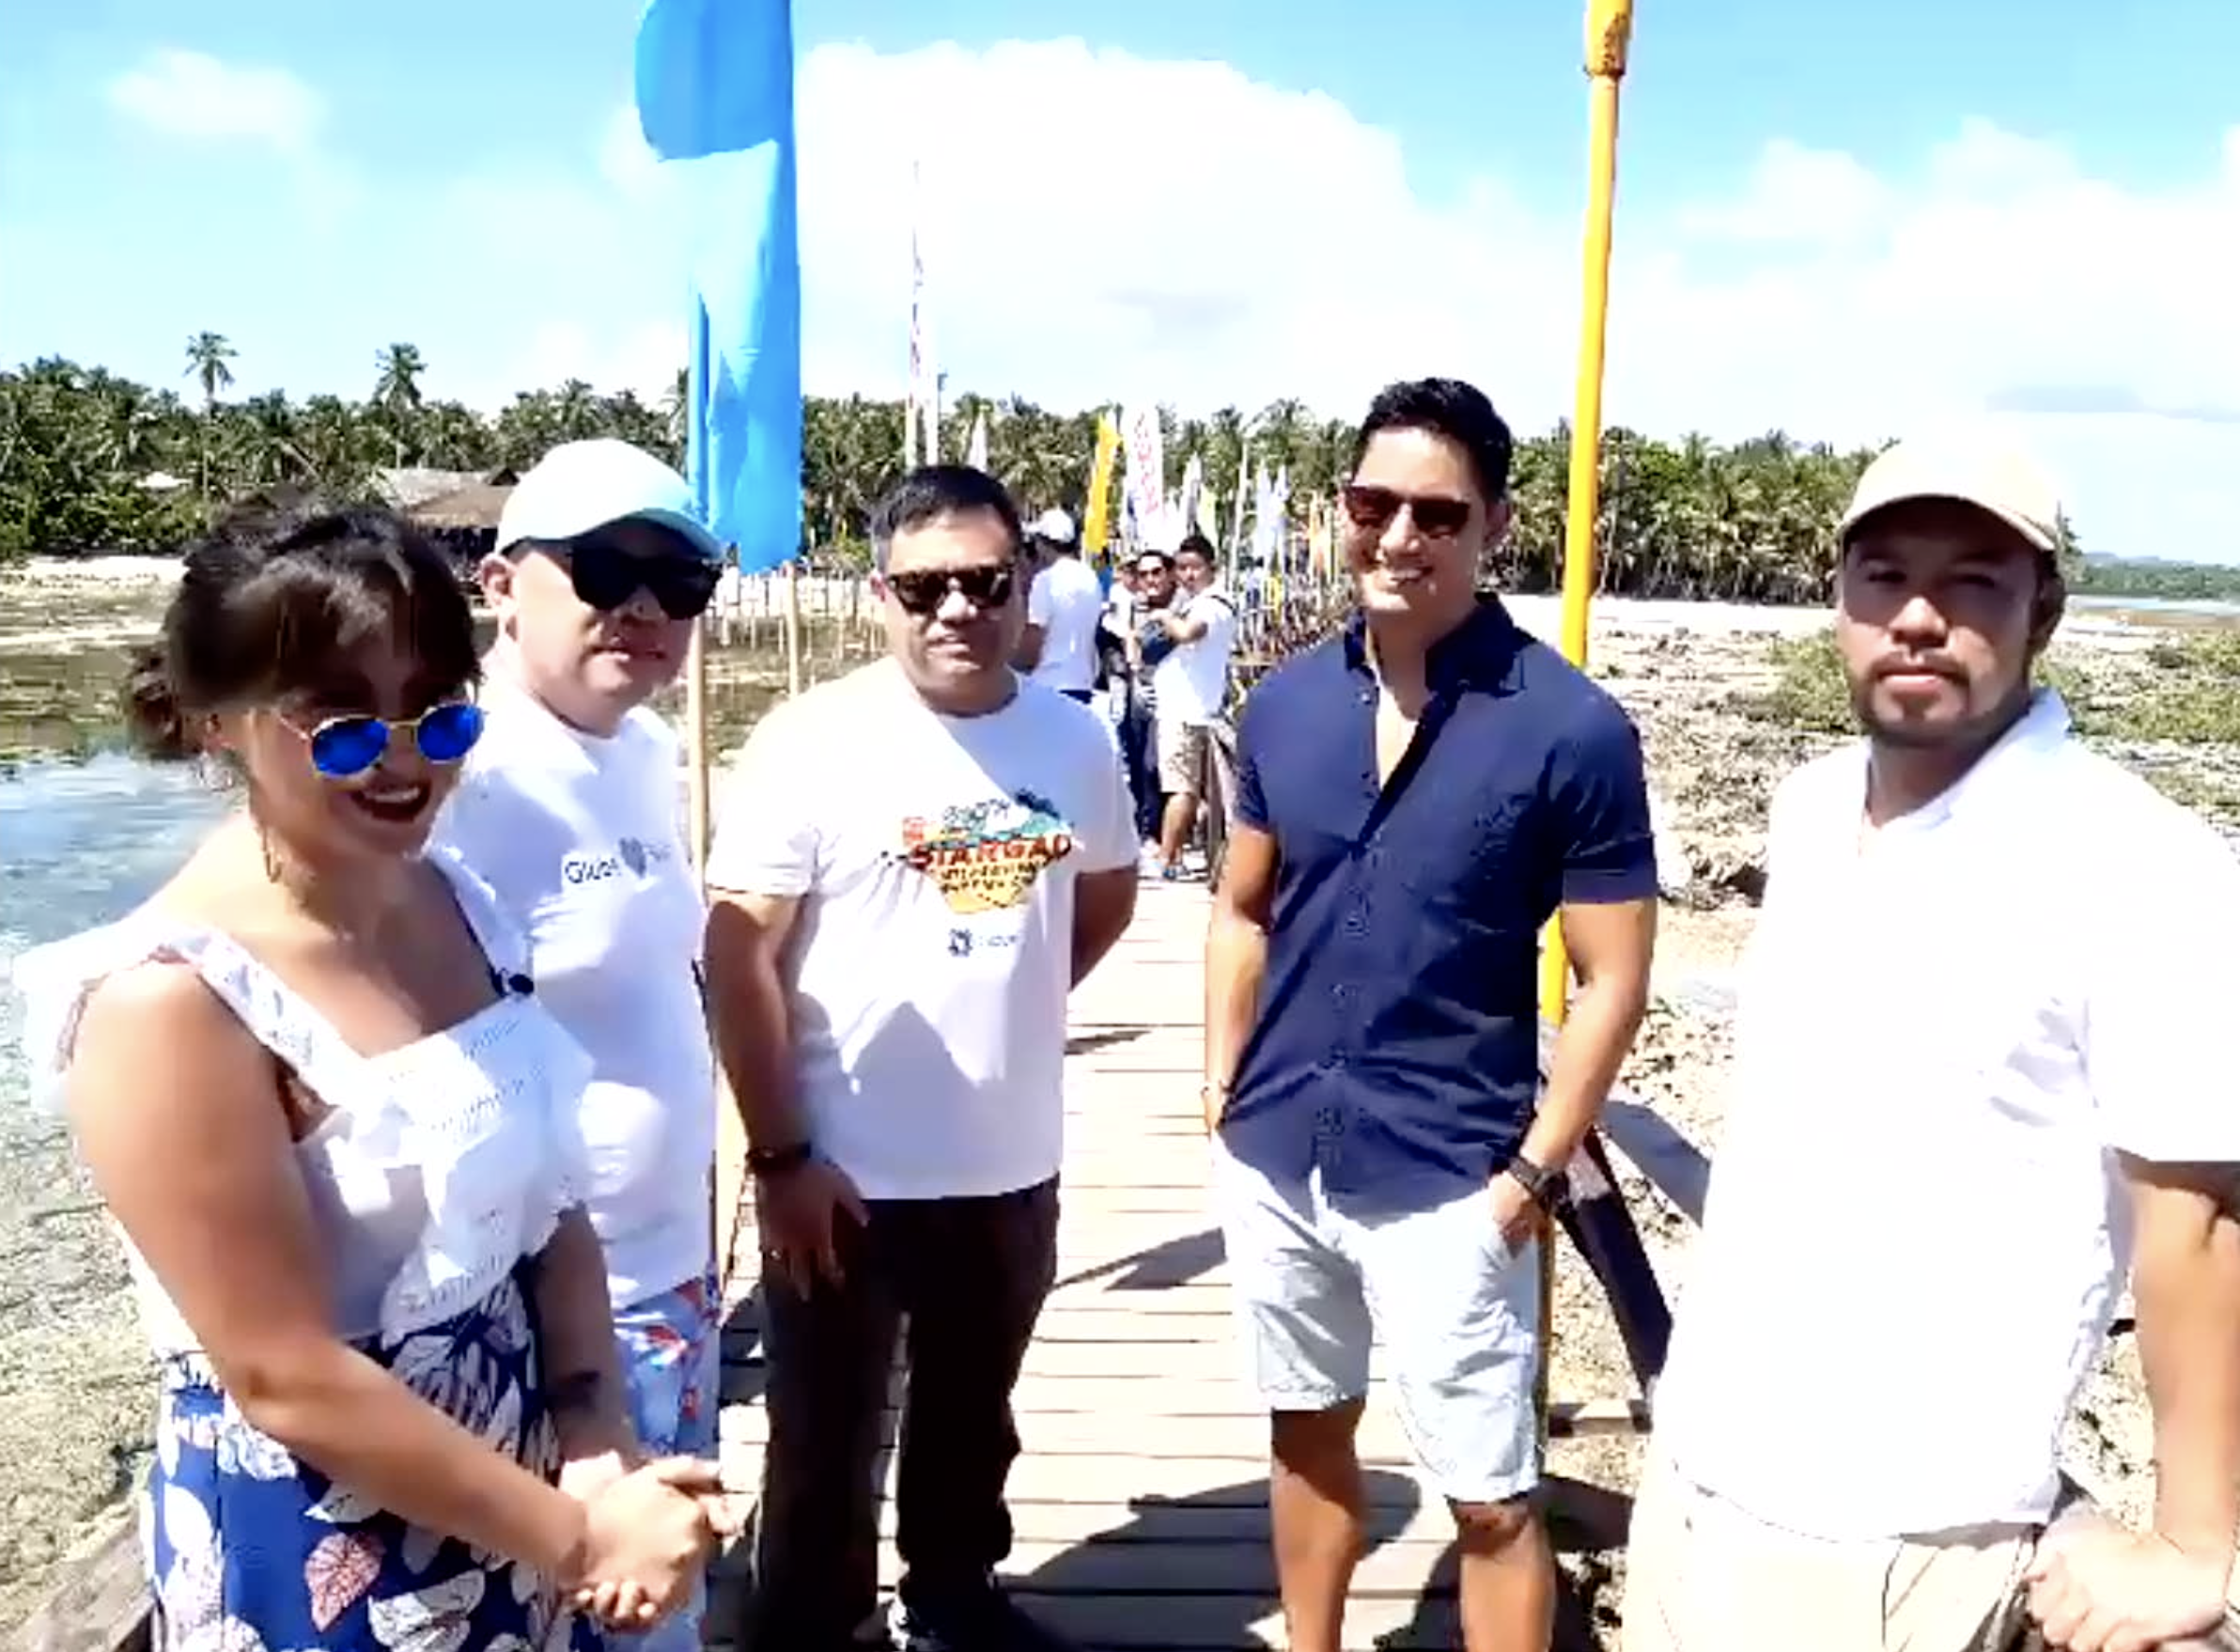 GLOBE-SIARGAO SUSTAINABILE TOURISM WEEK. Francisco Jose u0022Bingou0022 Matugas II of Surigao del Norte, 1st District (center) and Siargao Tourism Operators Association (STOA) President Ian Sermonia (right) join Globe President and CEO Ernest Cu (2nd from left) at the celebration of Globe-Siargao Sustainable Tourism Week.  With them are hosts Joyce Pring (left) and Marc Nelson (2nd from right). Photos from Globe